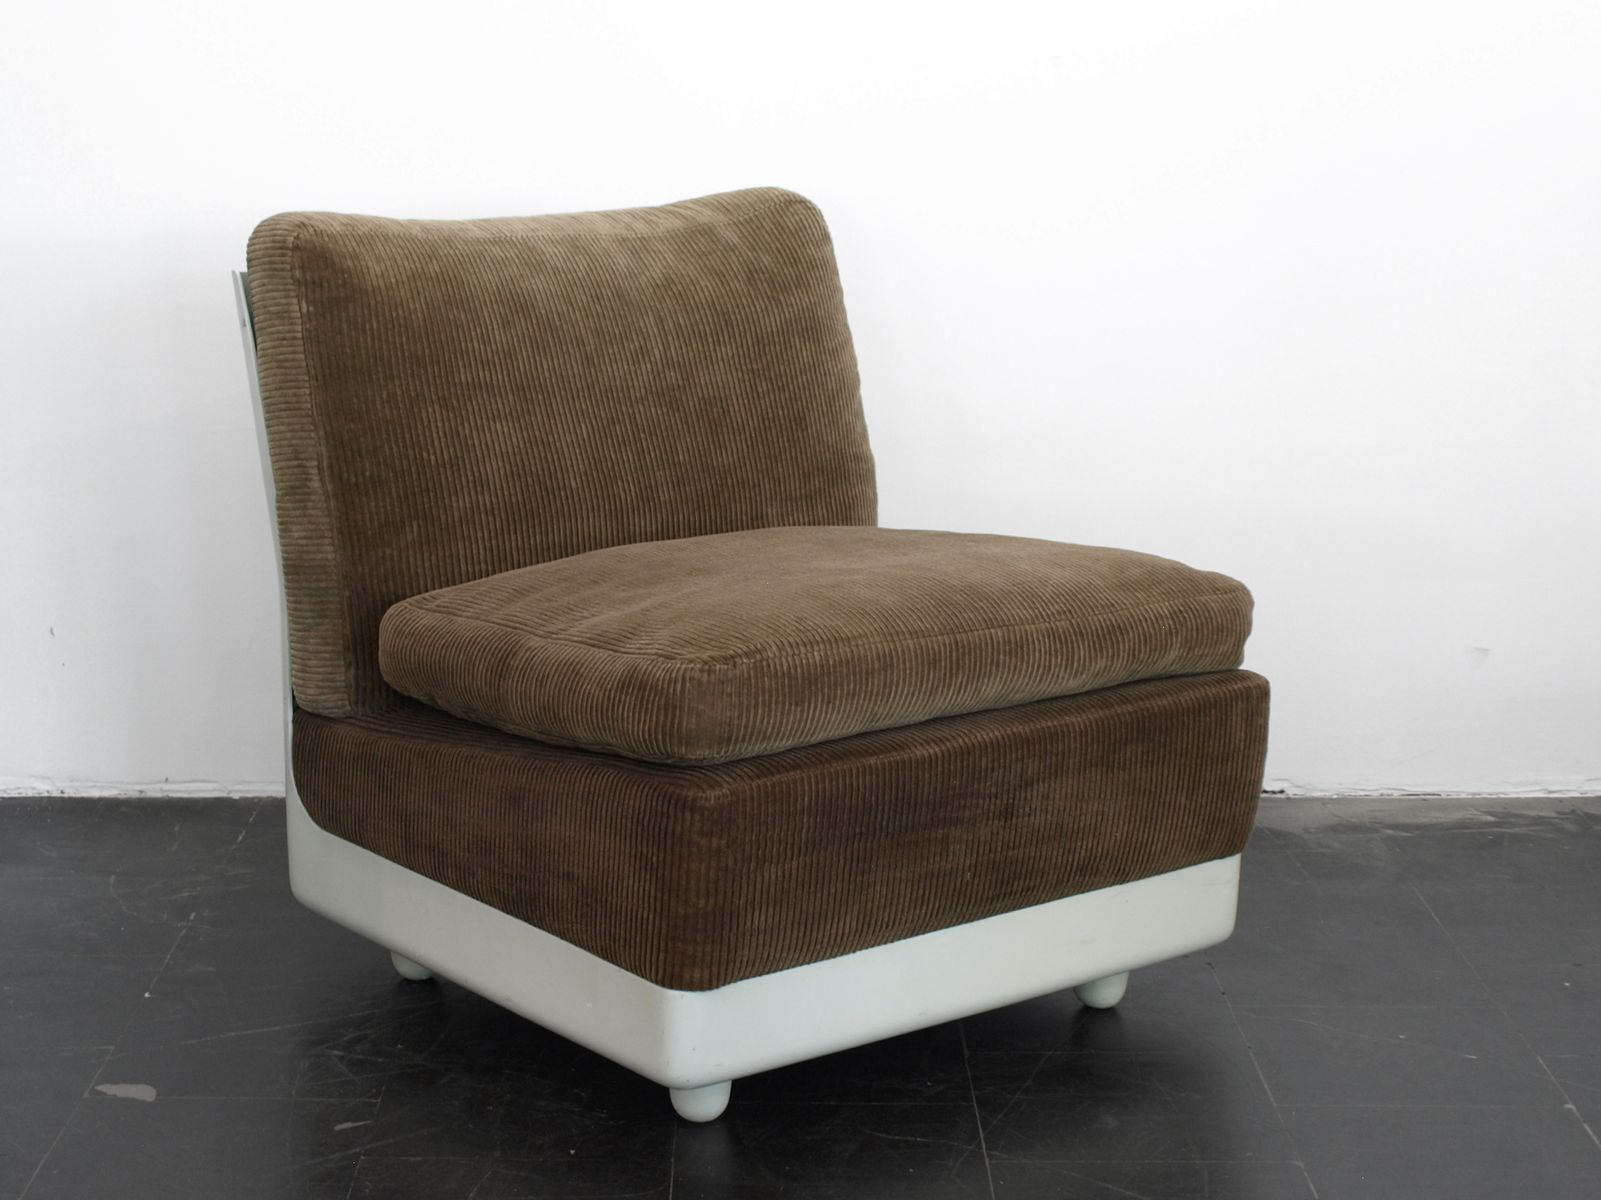 FG 2008 Lounge Chair by Wolfgang Feierbach 1970s for sale at Pamono